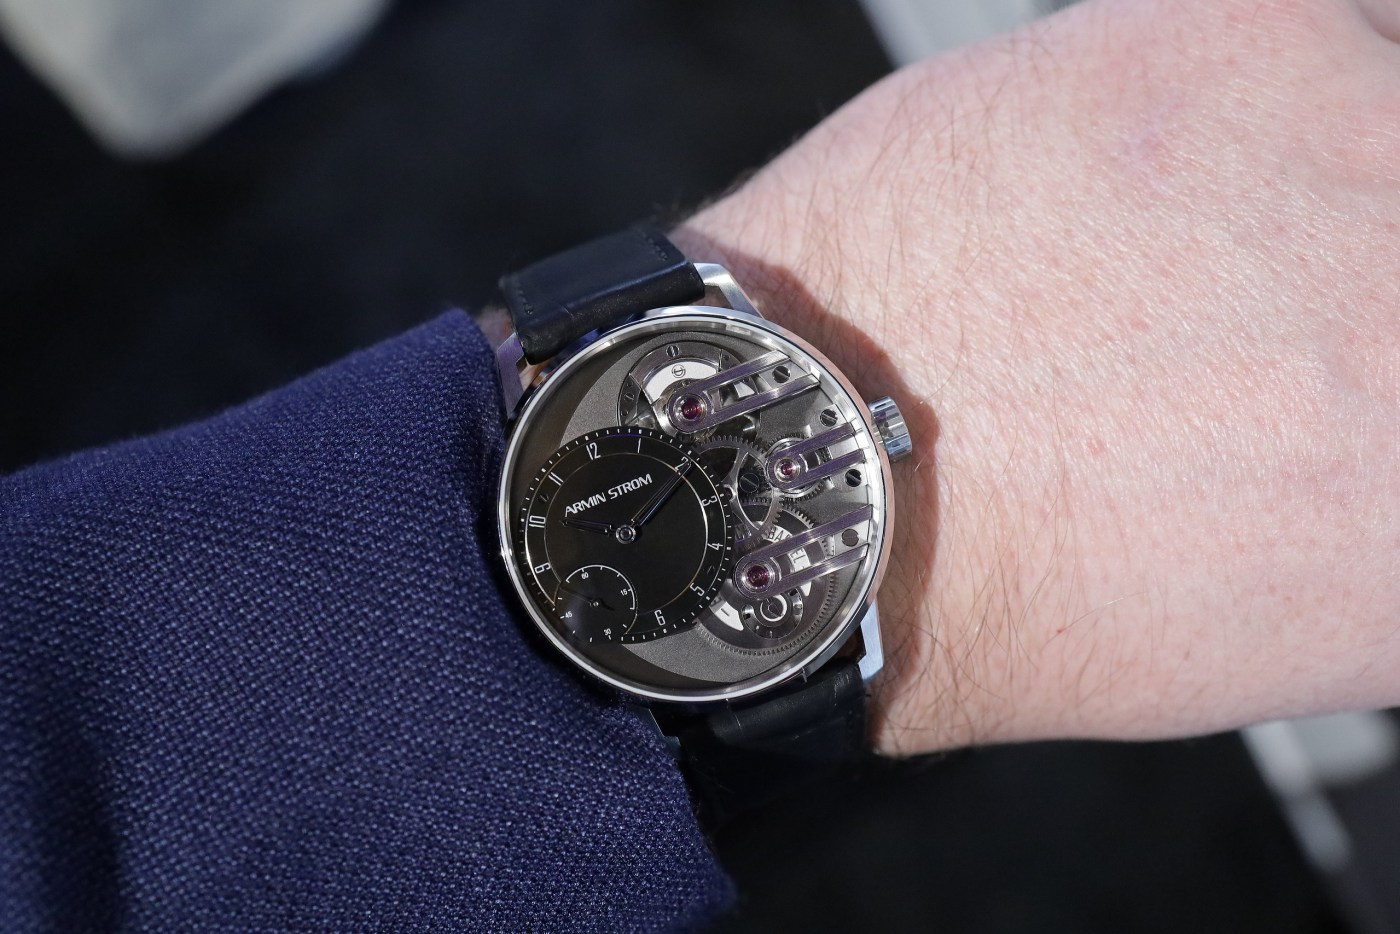 Armin Strom Gravity Equal Force System 78 wristshot